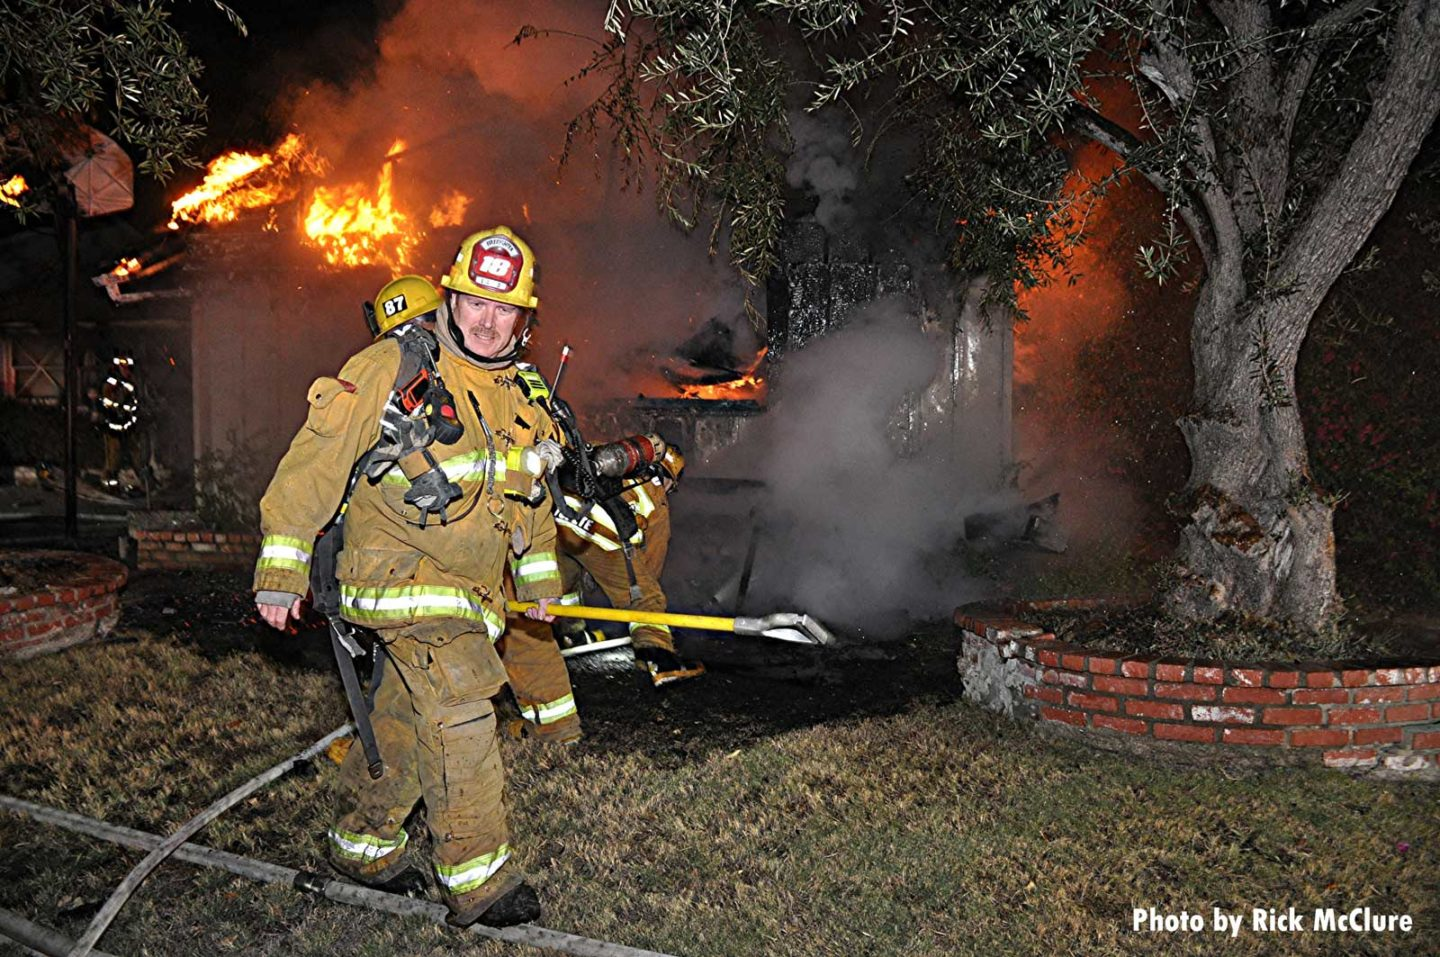 Firefighter with a hook walking with flames on roof of building